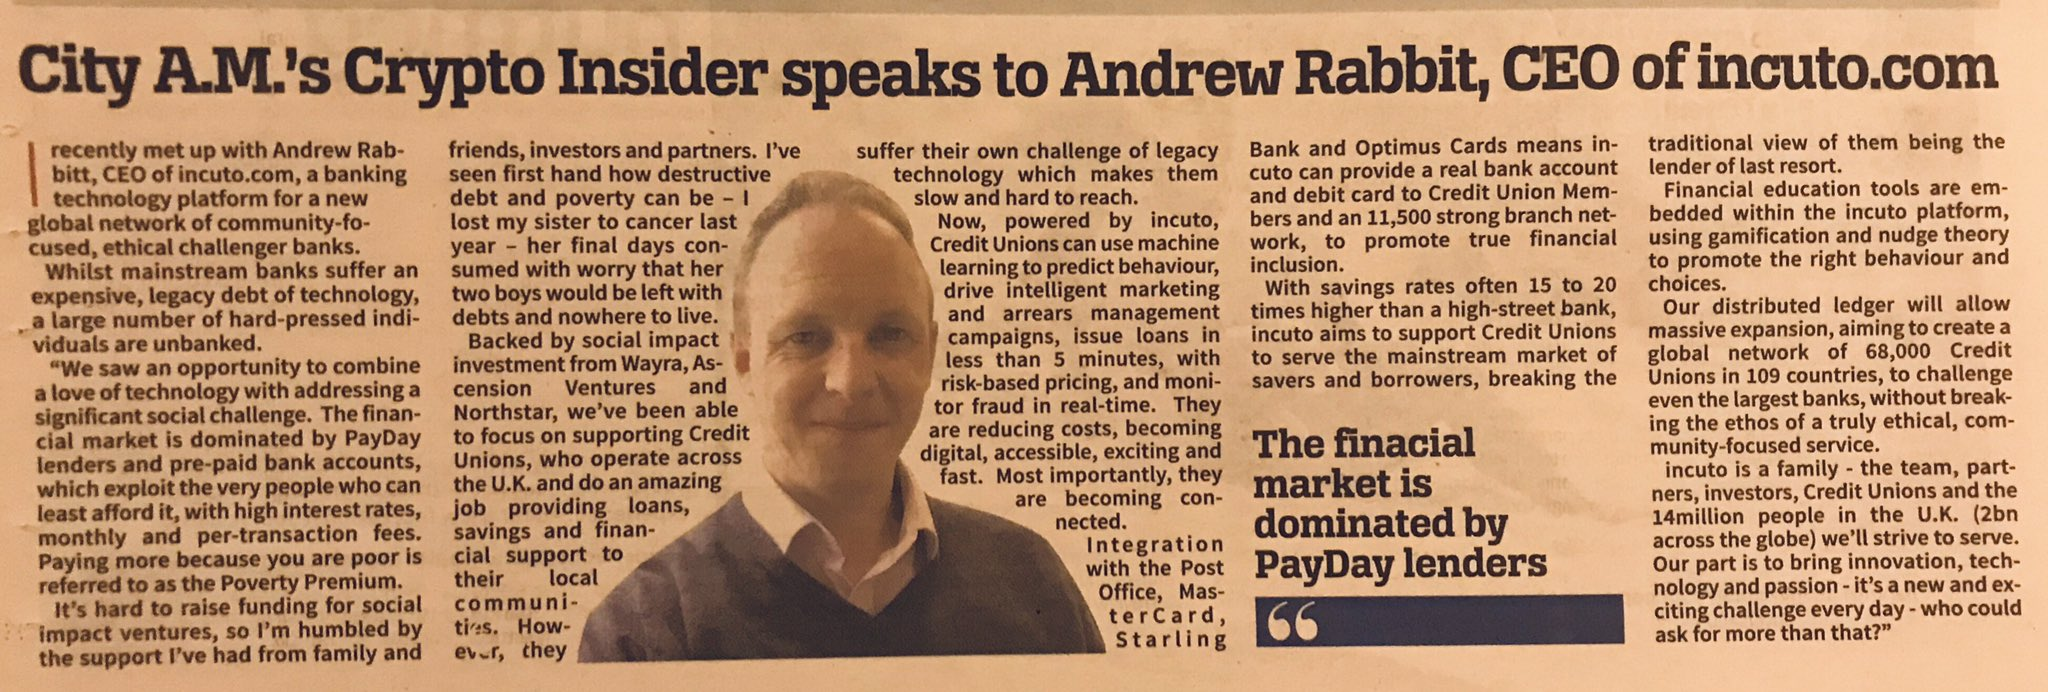 City AM article on incuto and it's founder & CEO, Andrew Rabbitt.